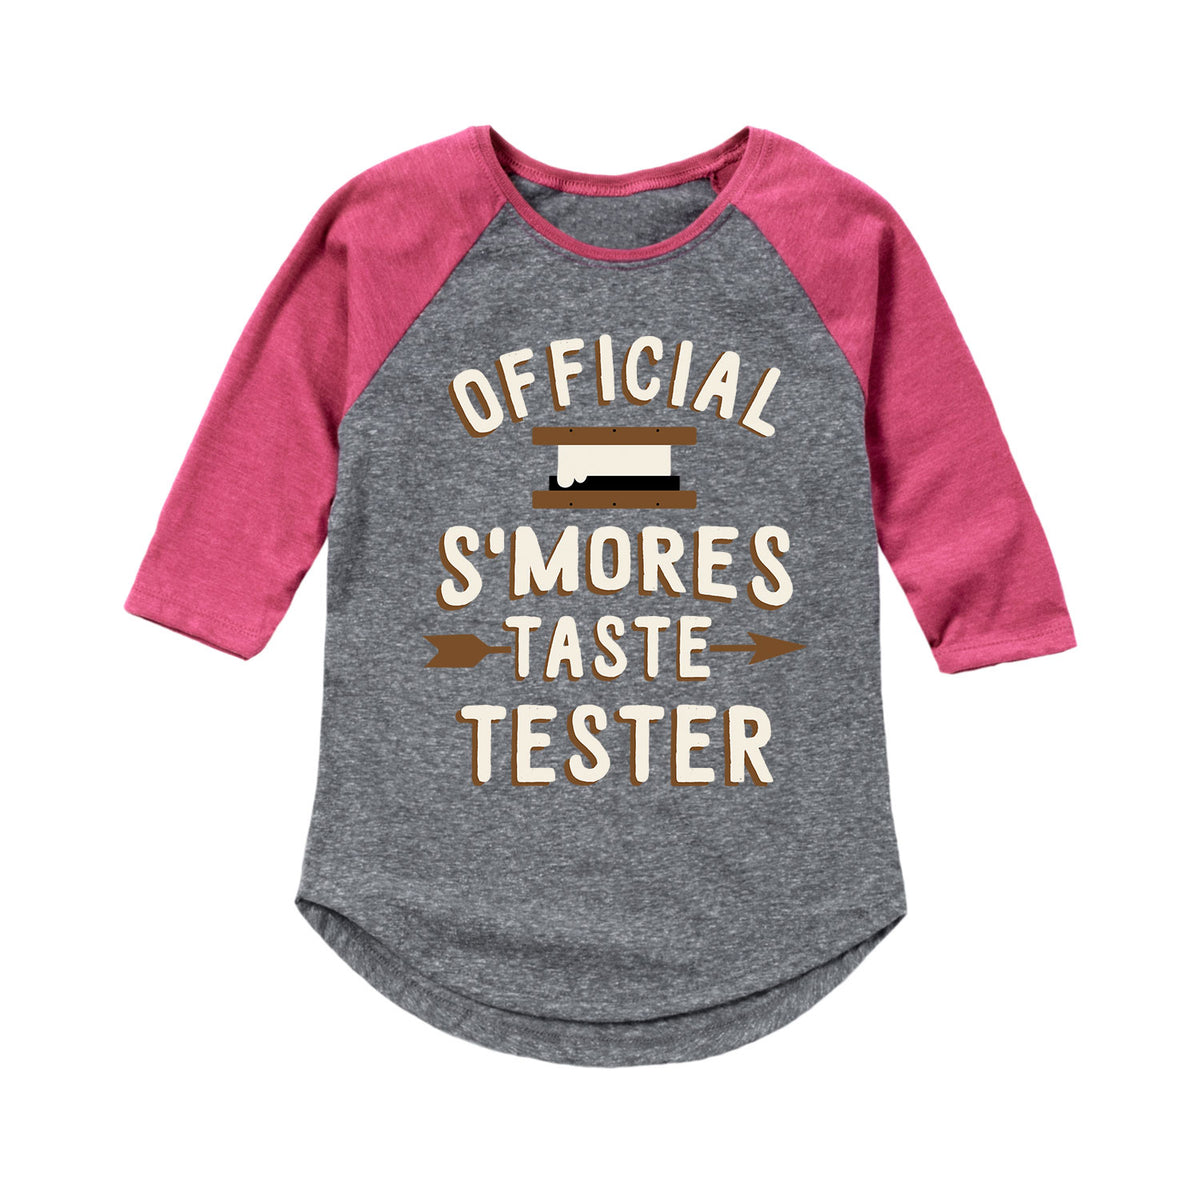 Smores Taste Tester - Youth & Toddler Girls Raglan